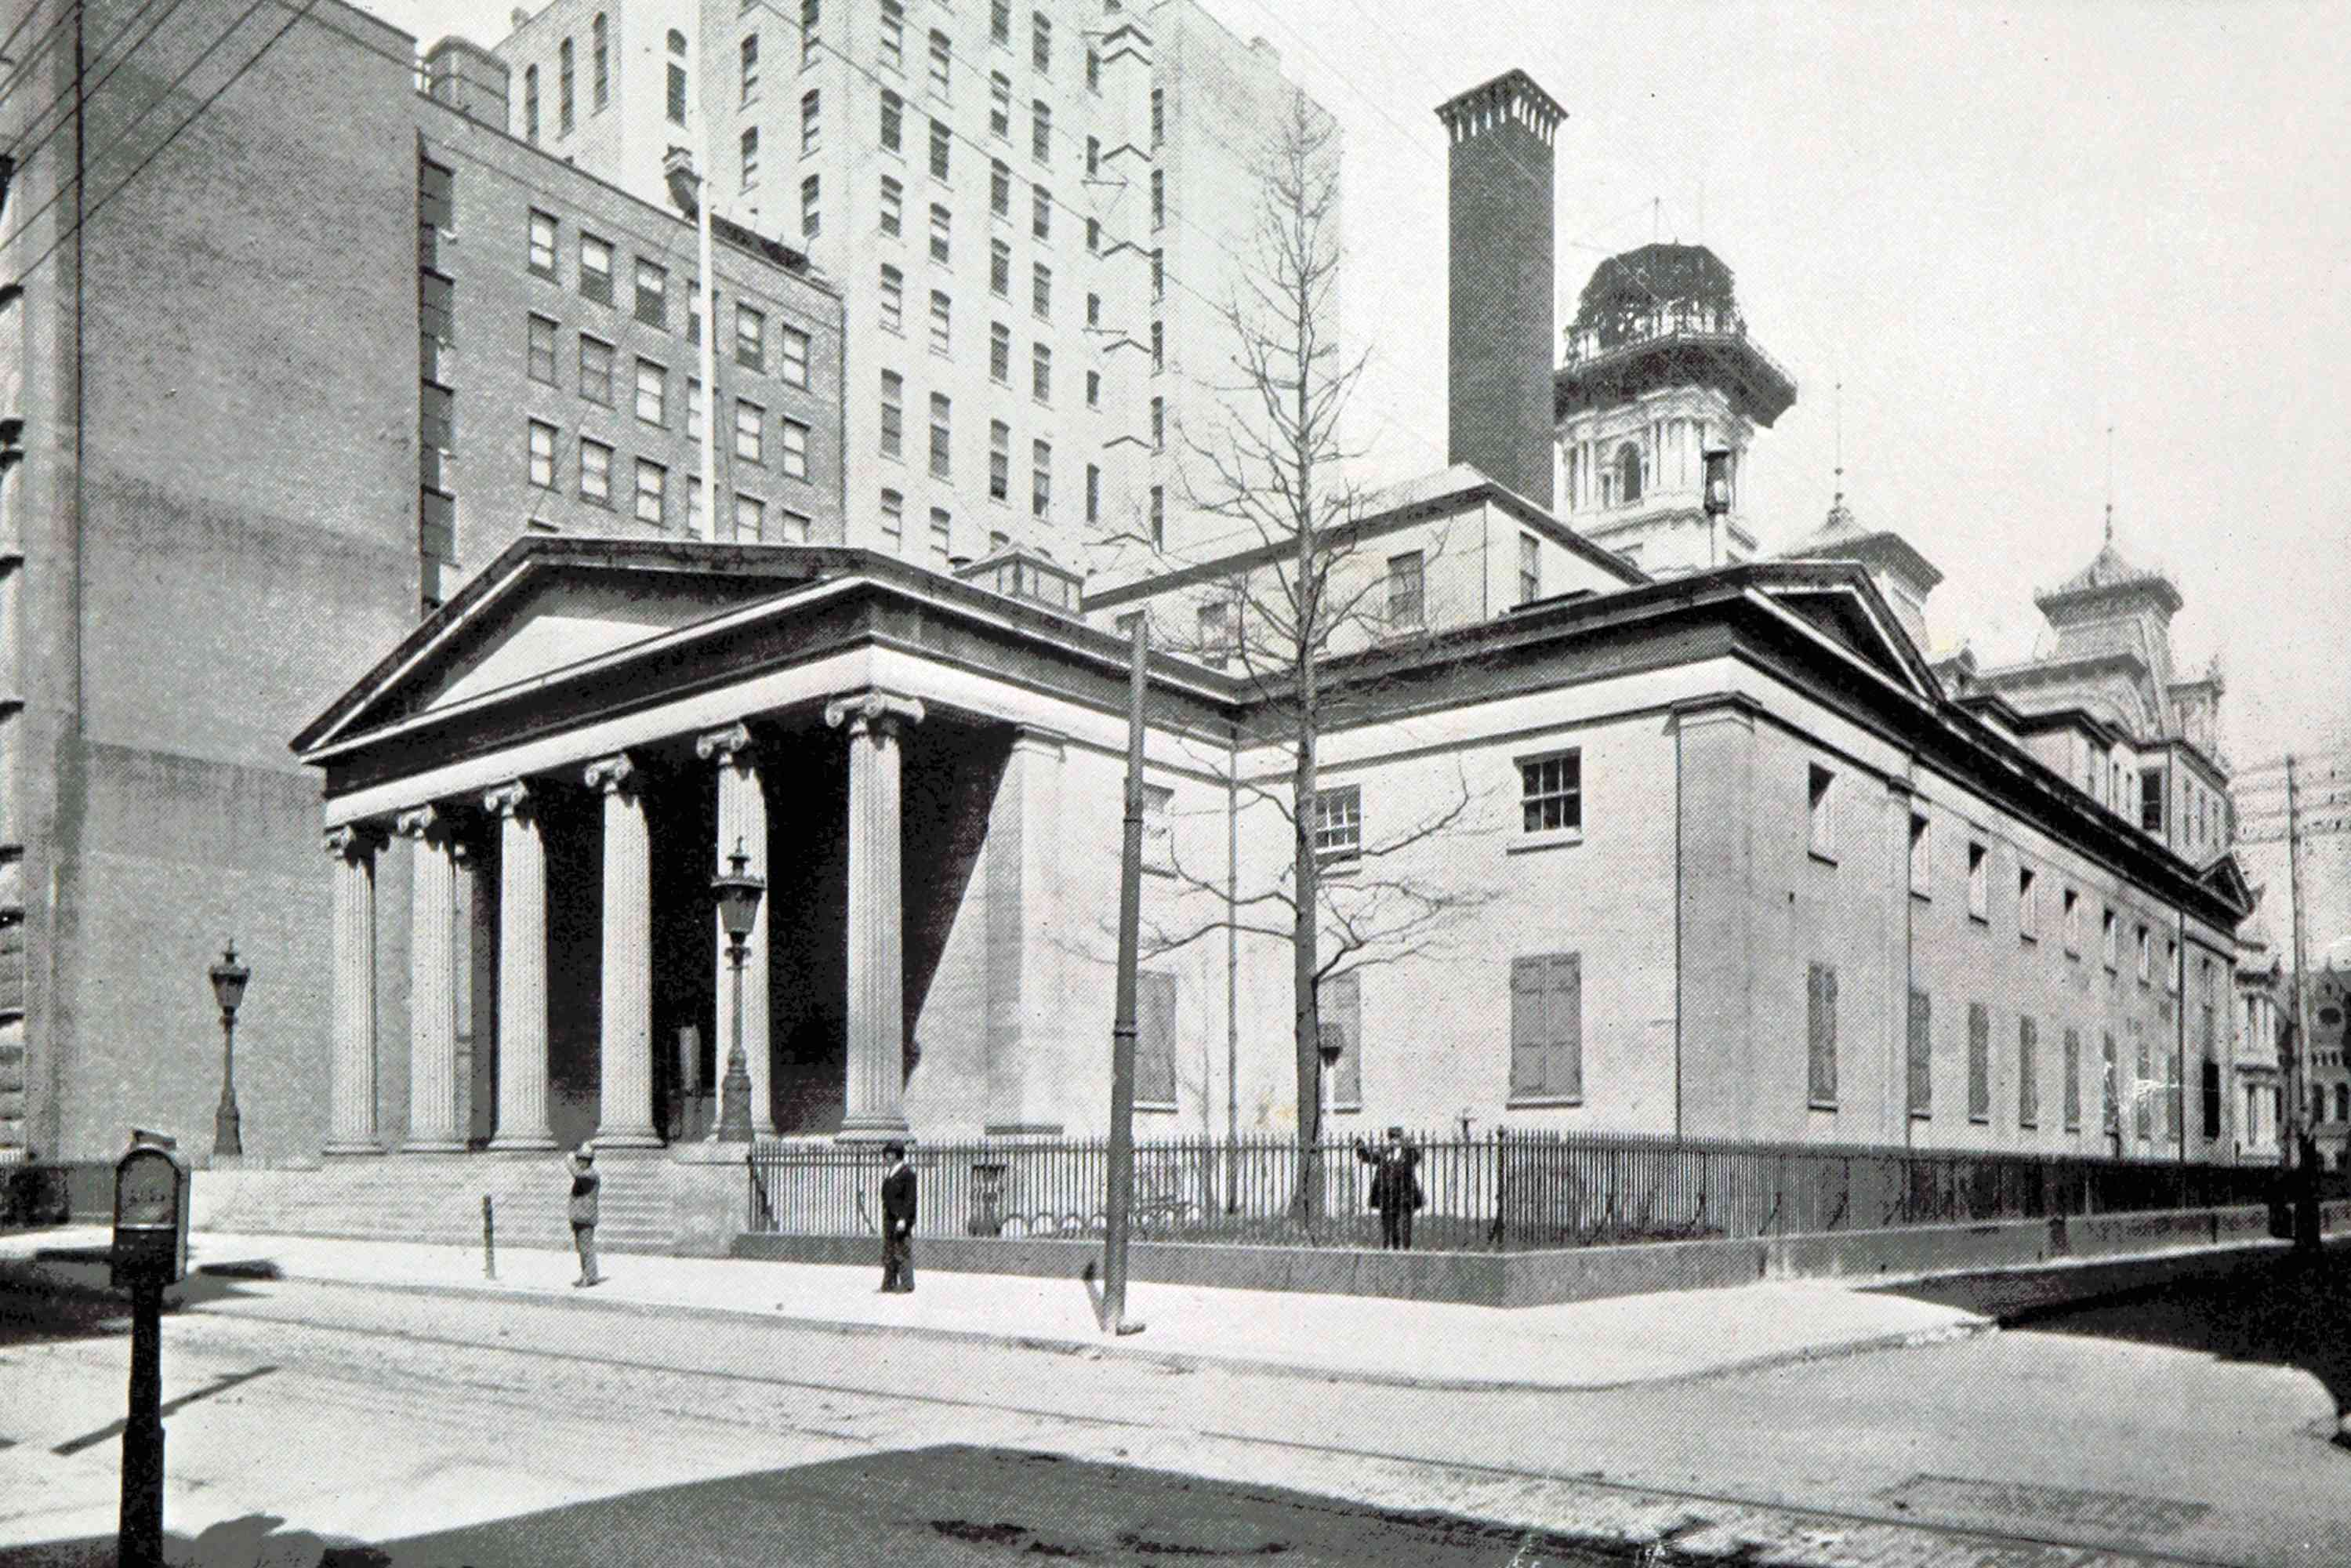 Second Philadelphia mint as seen from the street